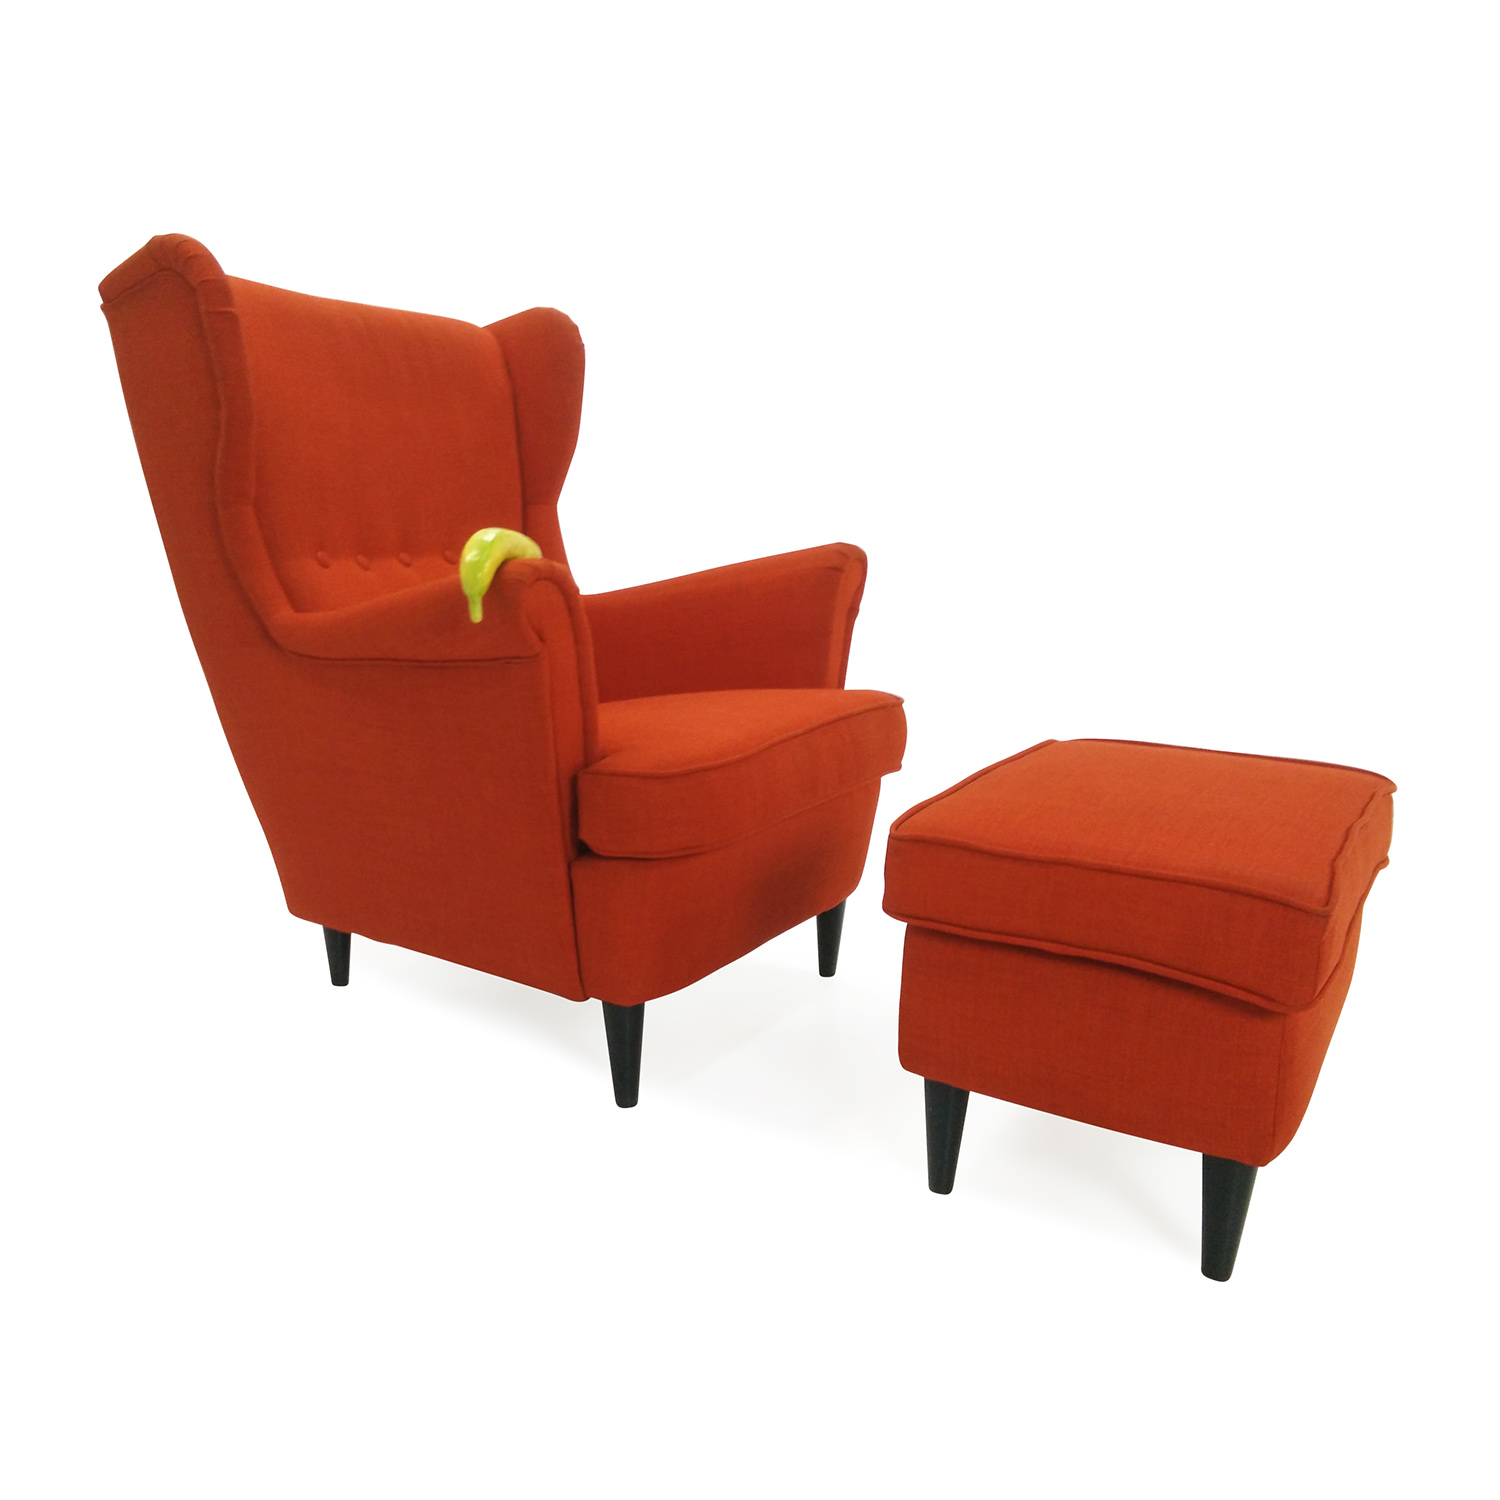 trendy orange furniture ikea ikea vilmar chair the chair s melamine with ikea chaise bercante. Black Bedroom Furniture Sets. Home Design Ideas